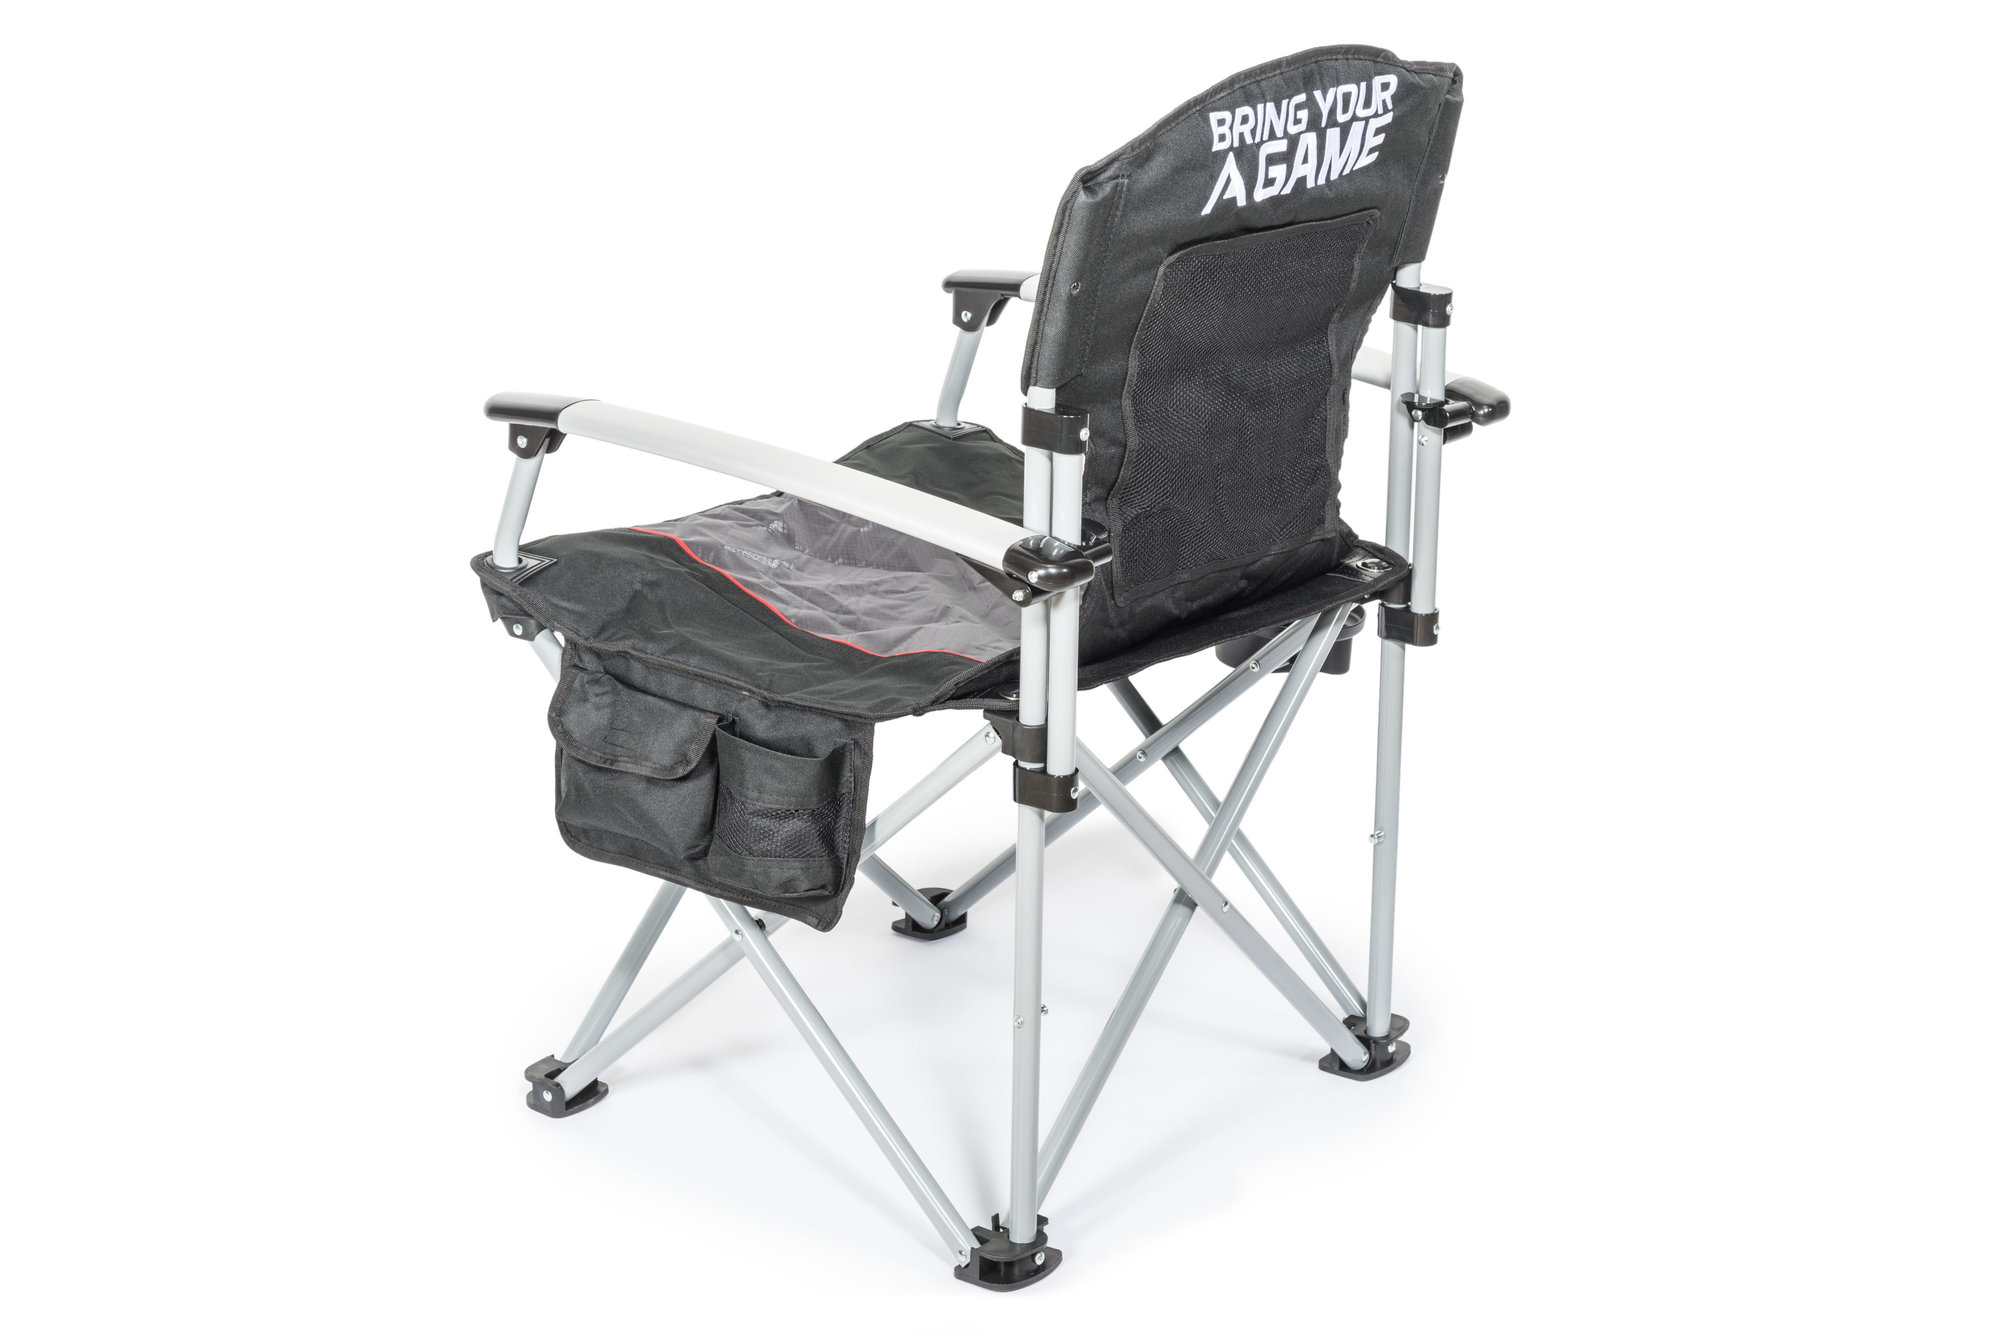 Arb Air Locker Camping Chair With Table